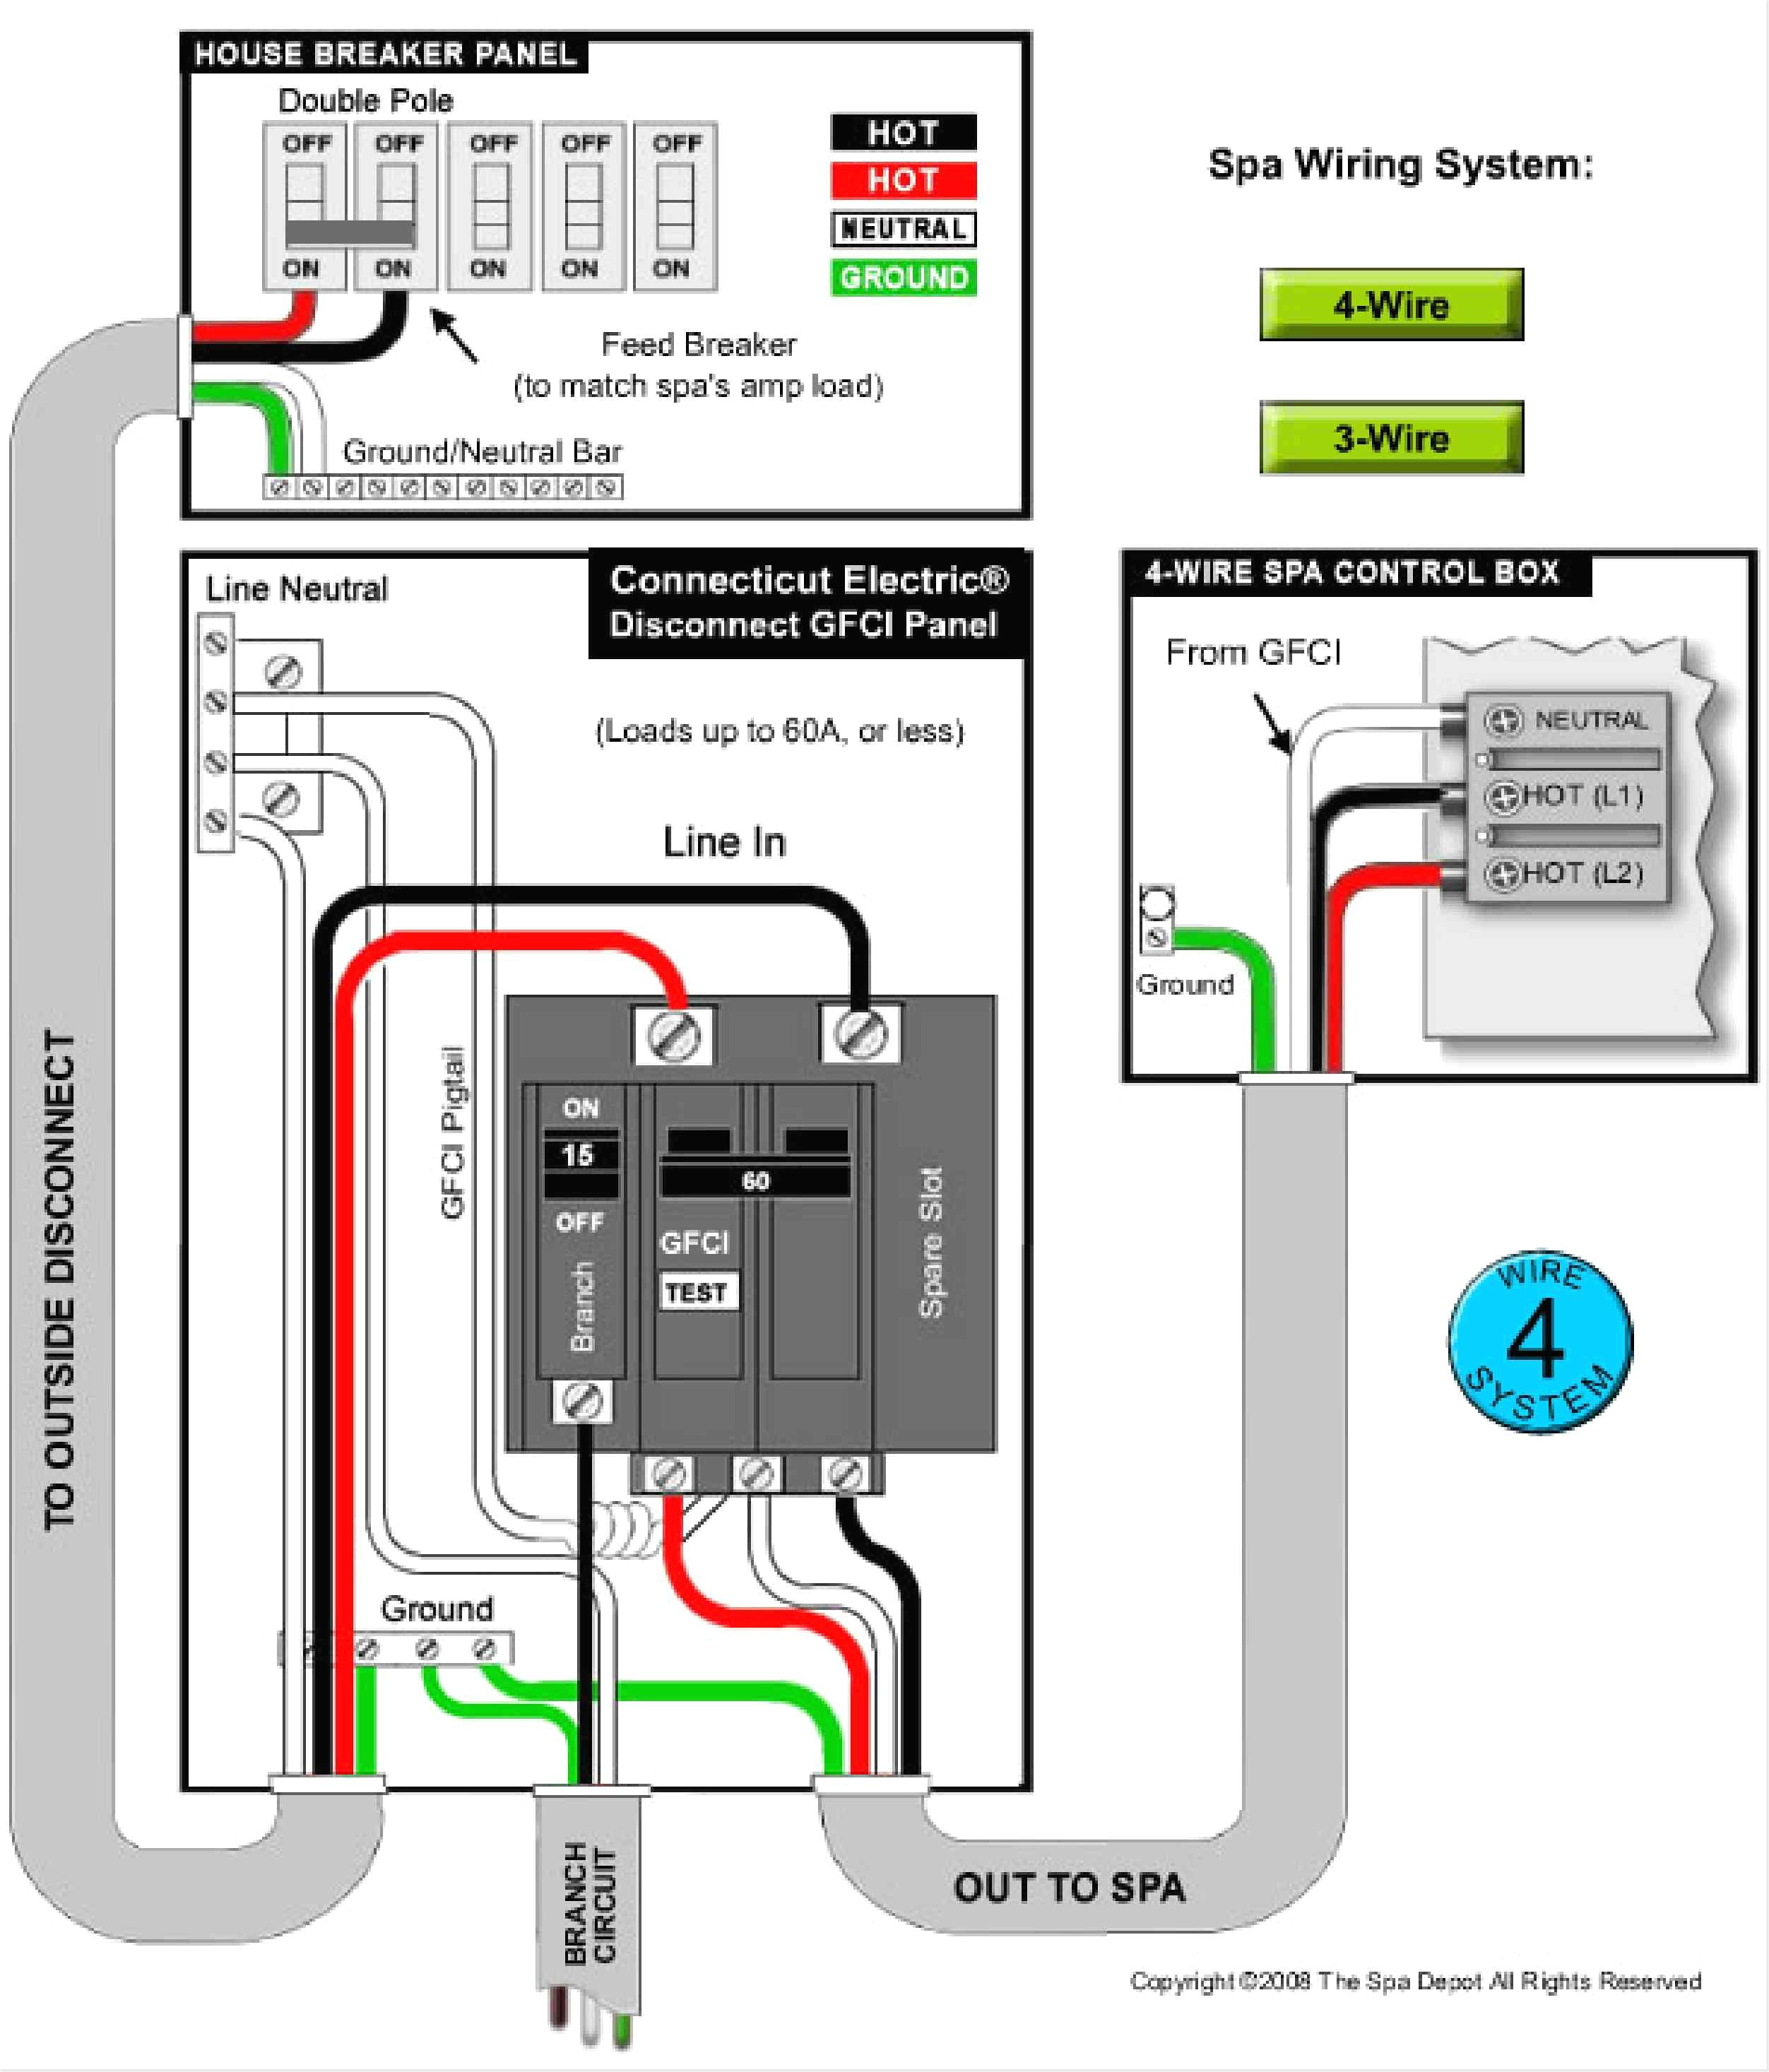 50 amp breaker wiring diagram 50a rv plug to 50 amp welder wiring diagram 50 amp square d gfci breaker wiring diagram download #13